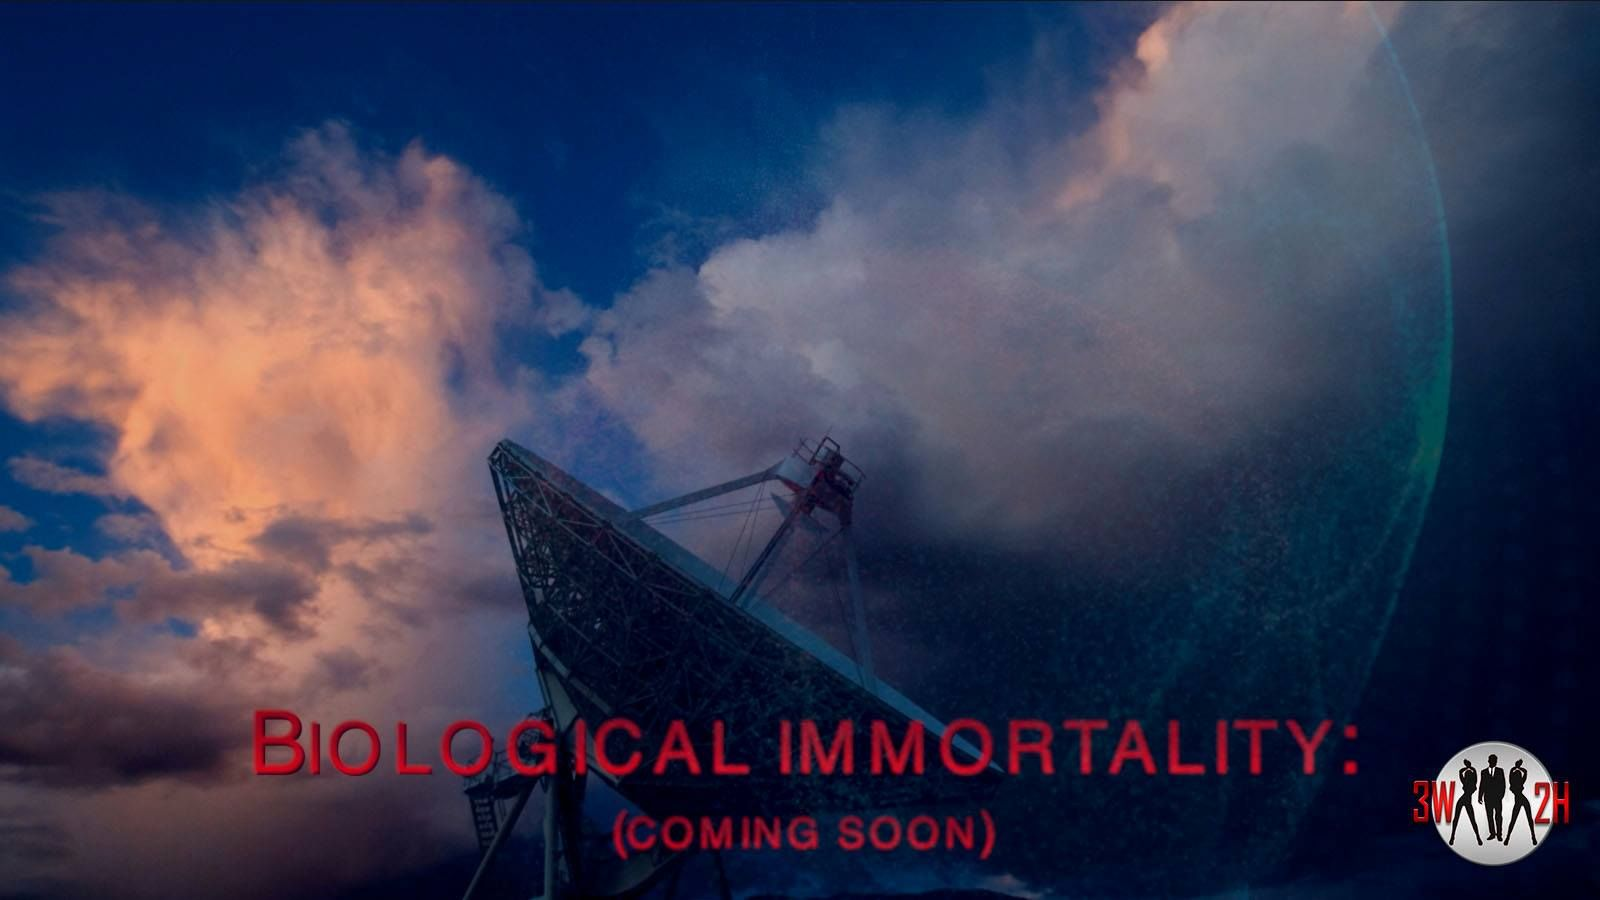 Biological Immortality Check out 3W2H for more information